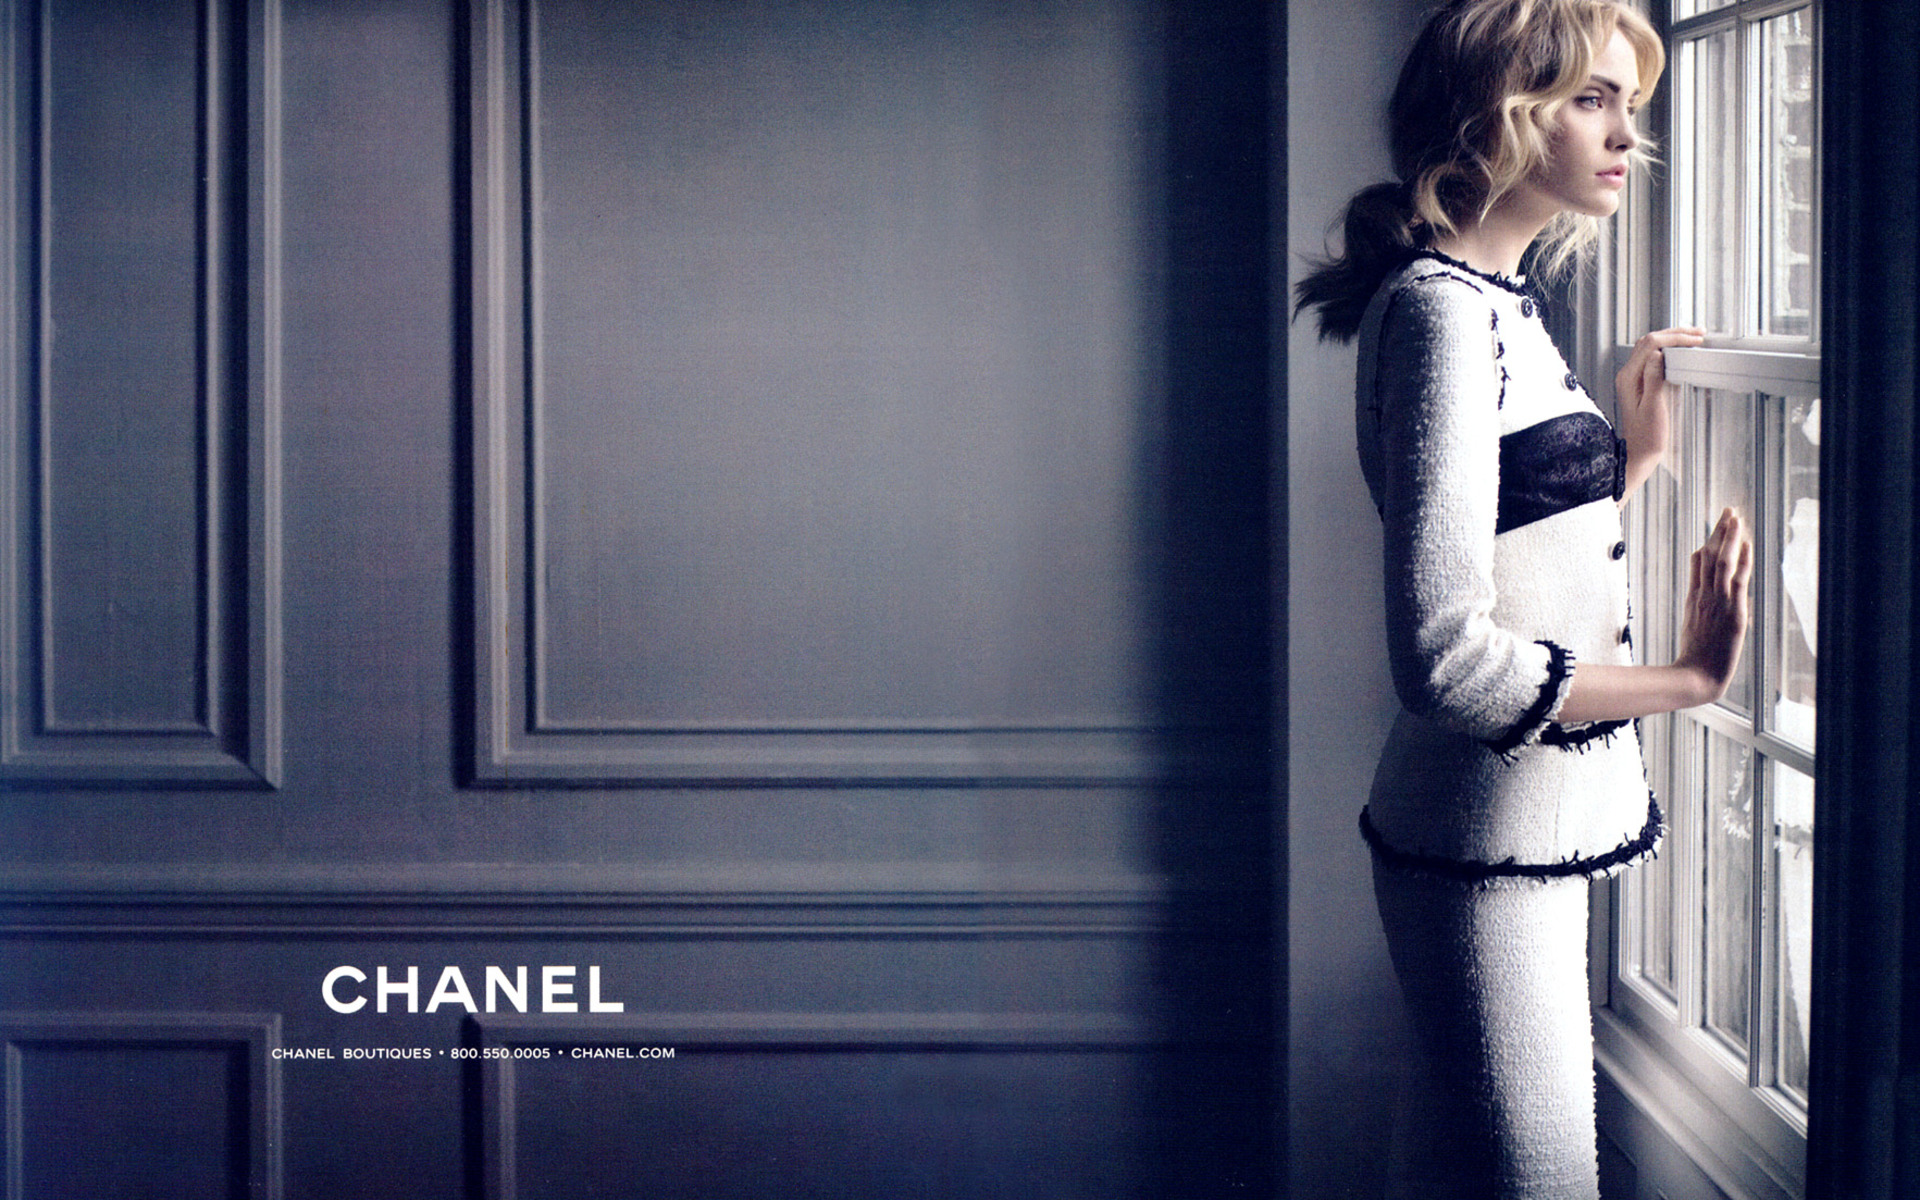 Chanel Wallpaper 1920x1200